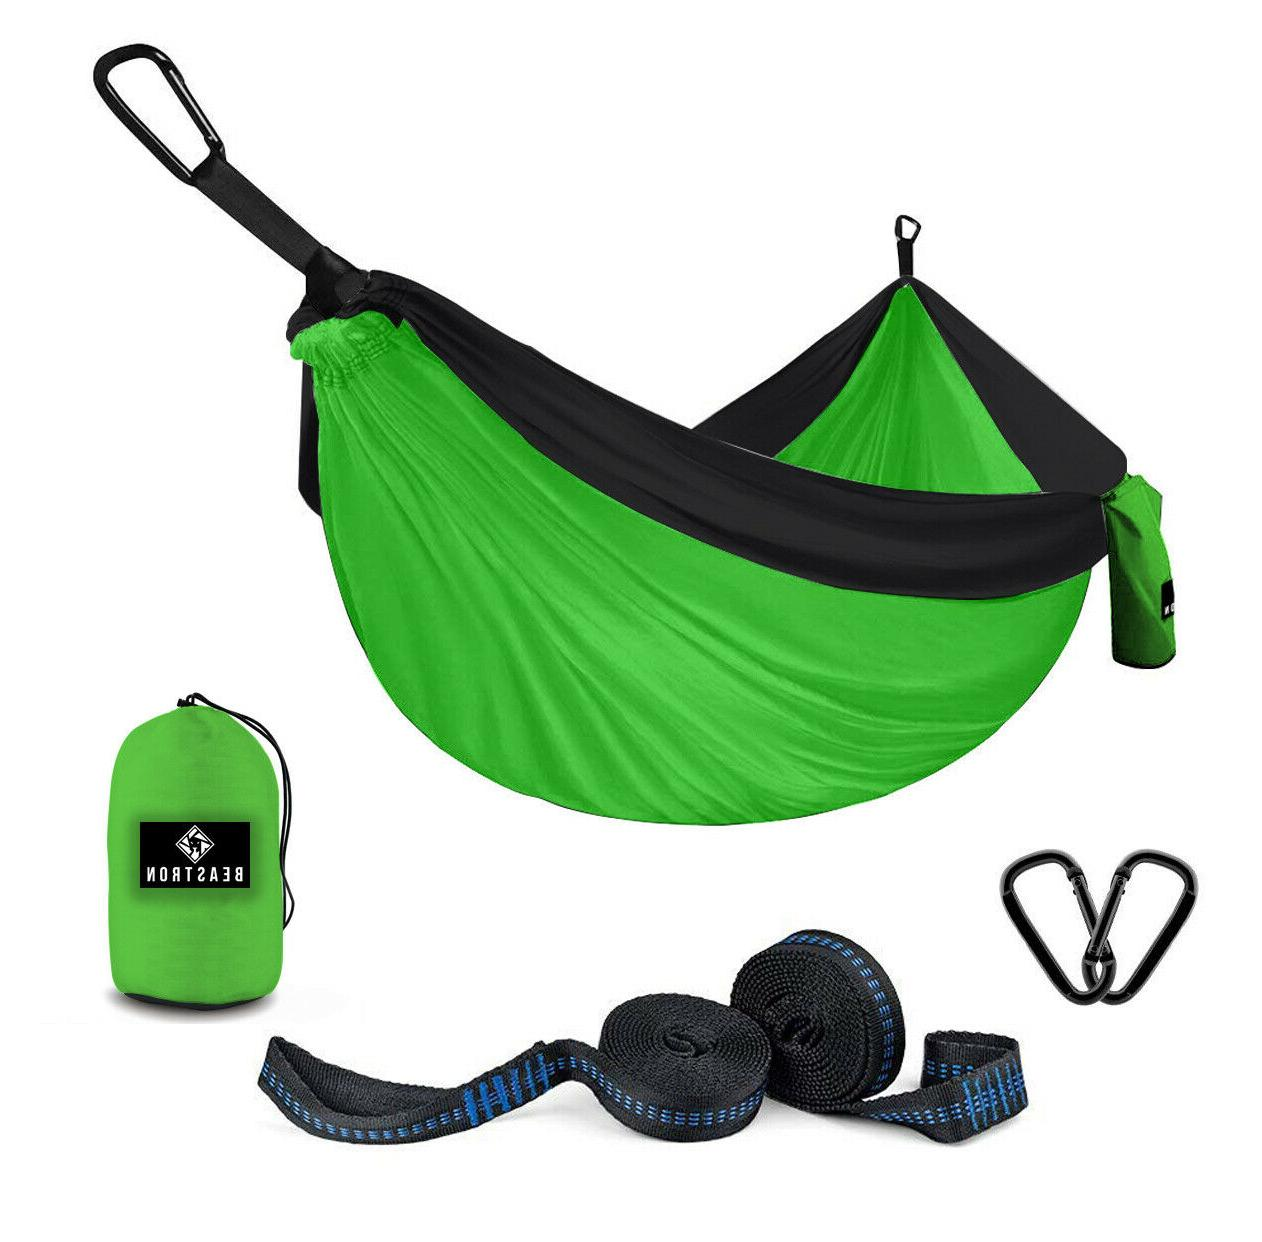 Beastron Camping Hammock Large Size with Tree Straps, Max 60